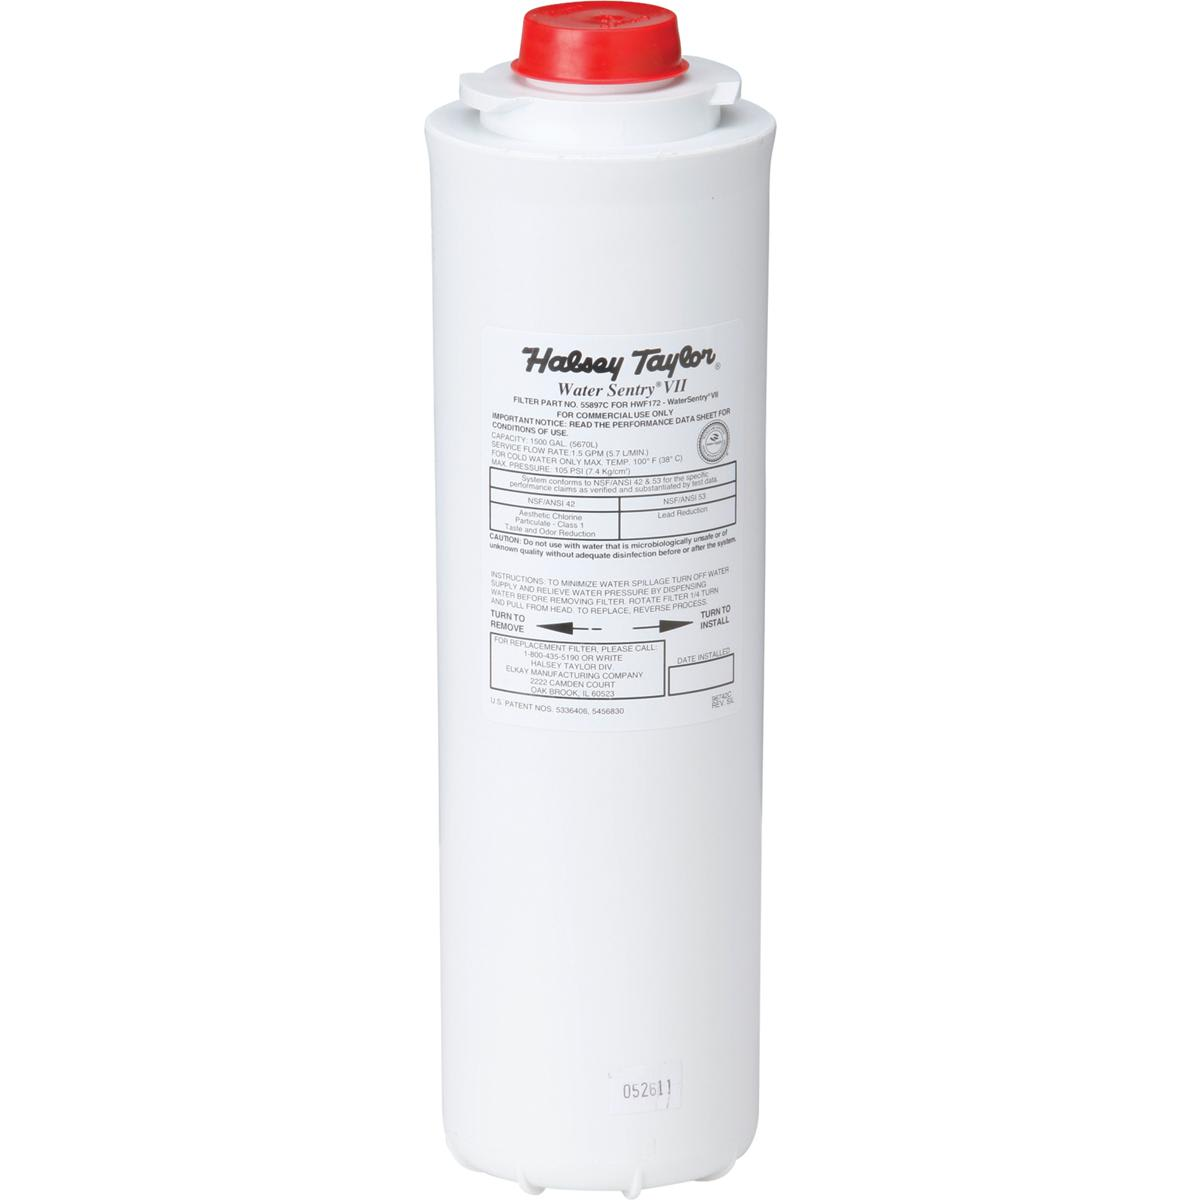 Halsey Taylor 55898C/_12pk WaterSentry Plus Replacement Filter Bottle Fillers 12-Pack